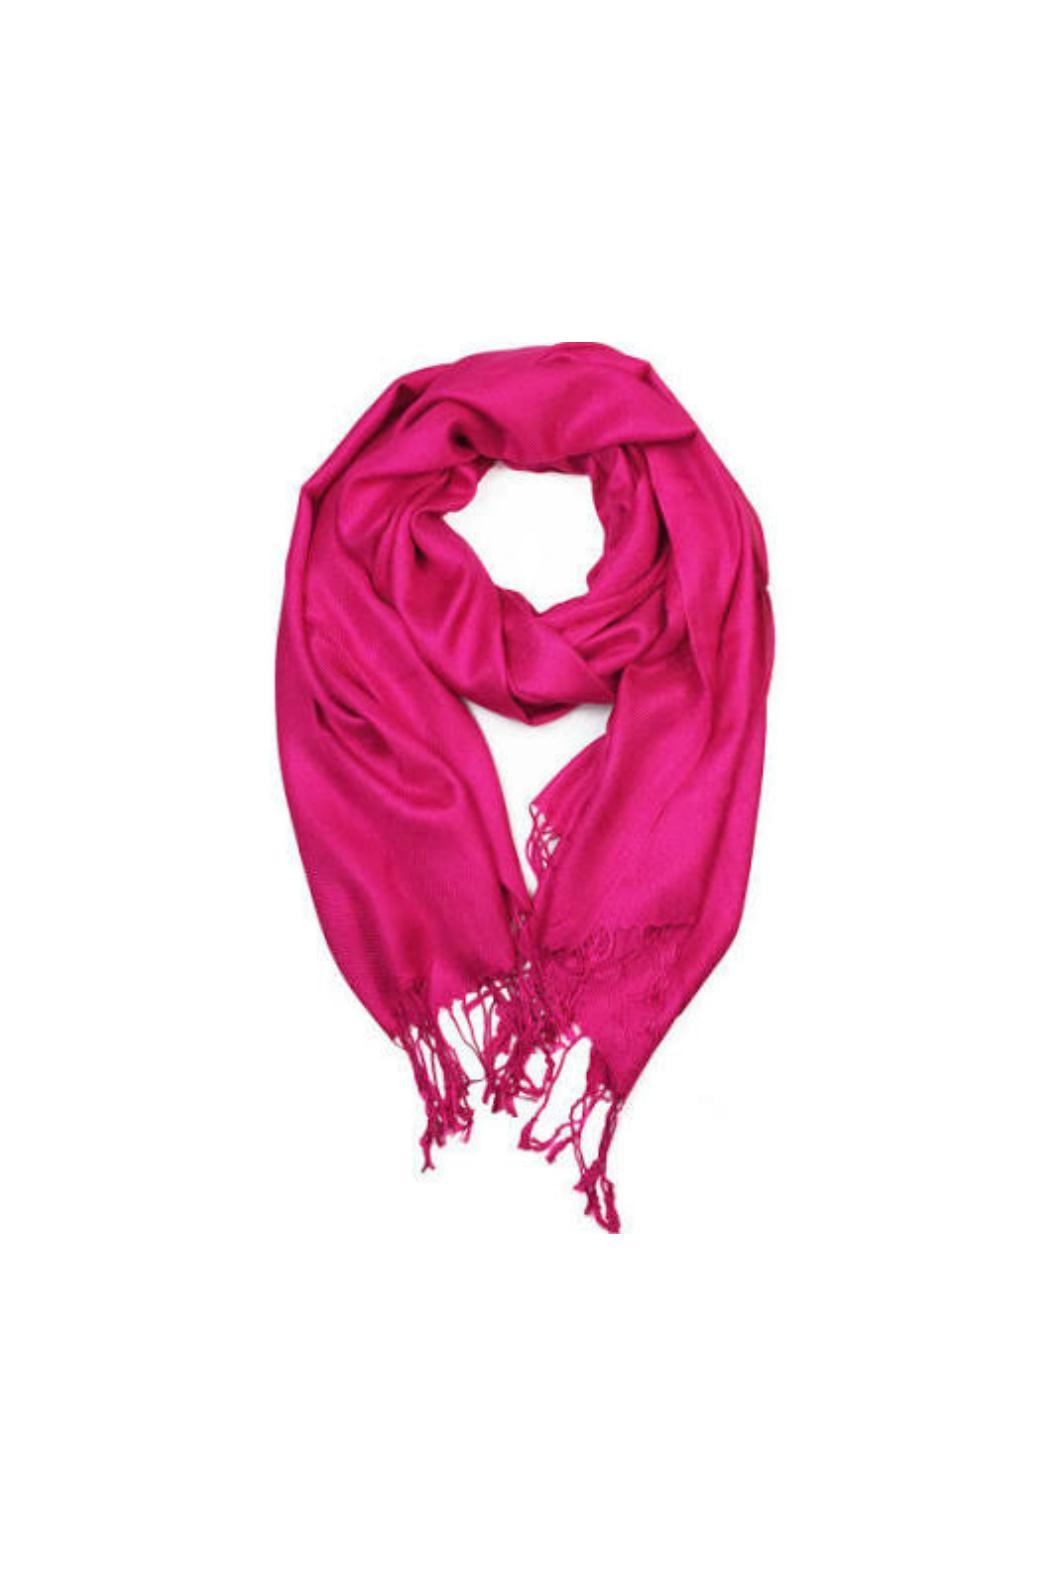 6th Borough Boutique Pink Pashmina Scarf - Main Image